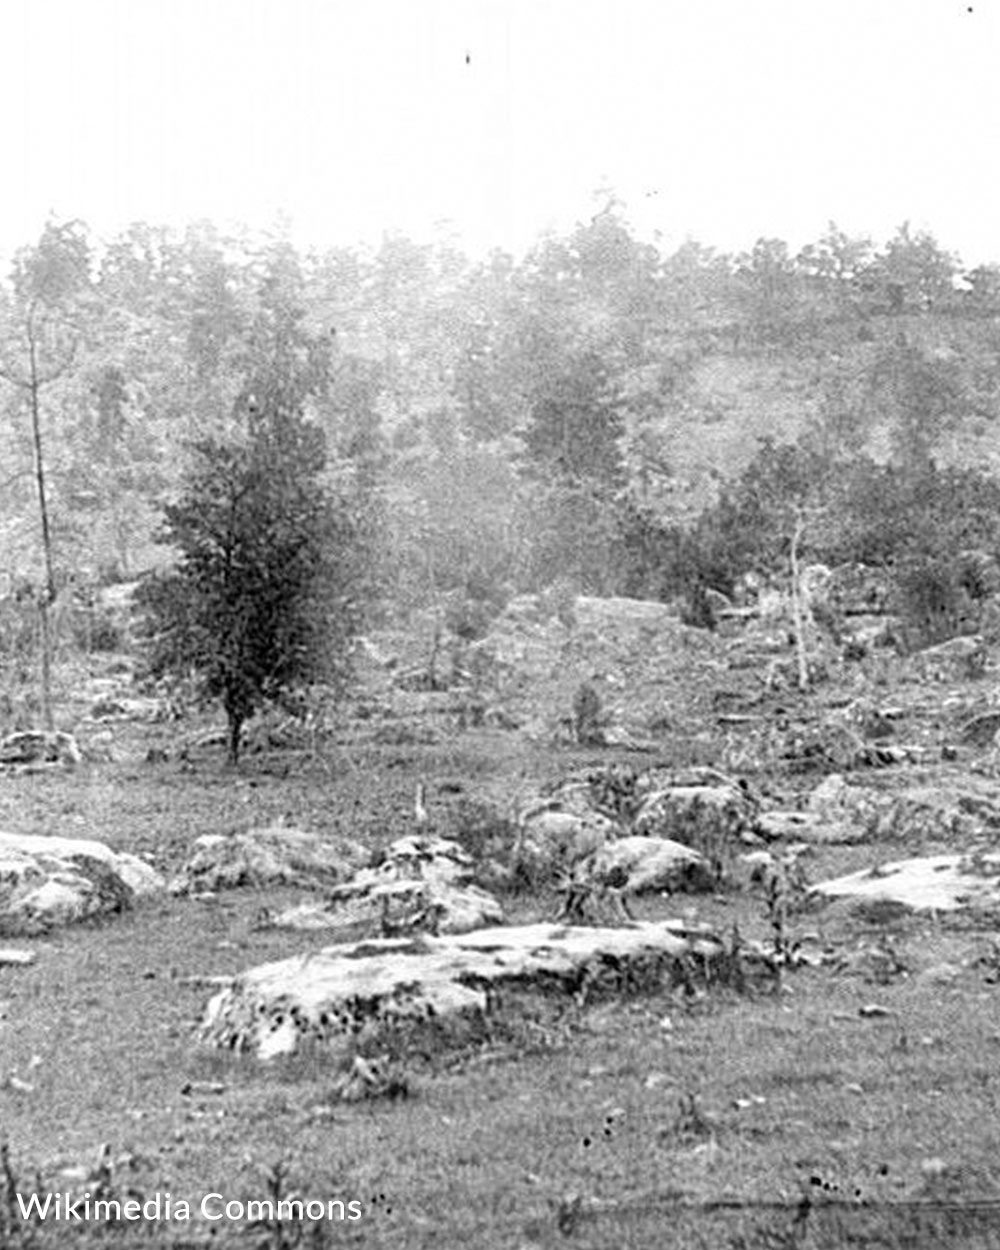 Little Round Top was a critical point in the Battle of Gettysburg.